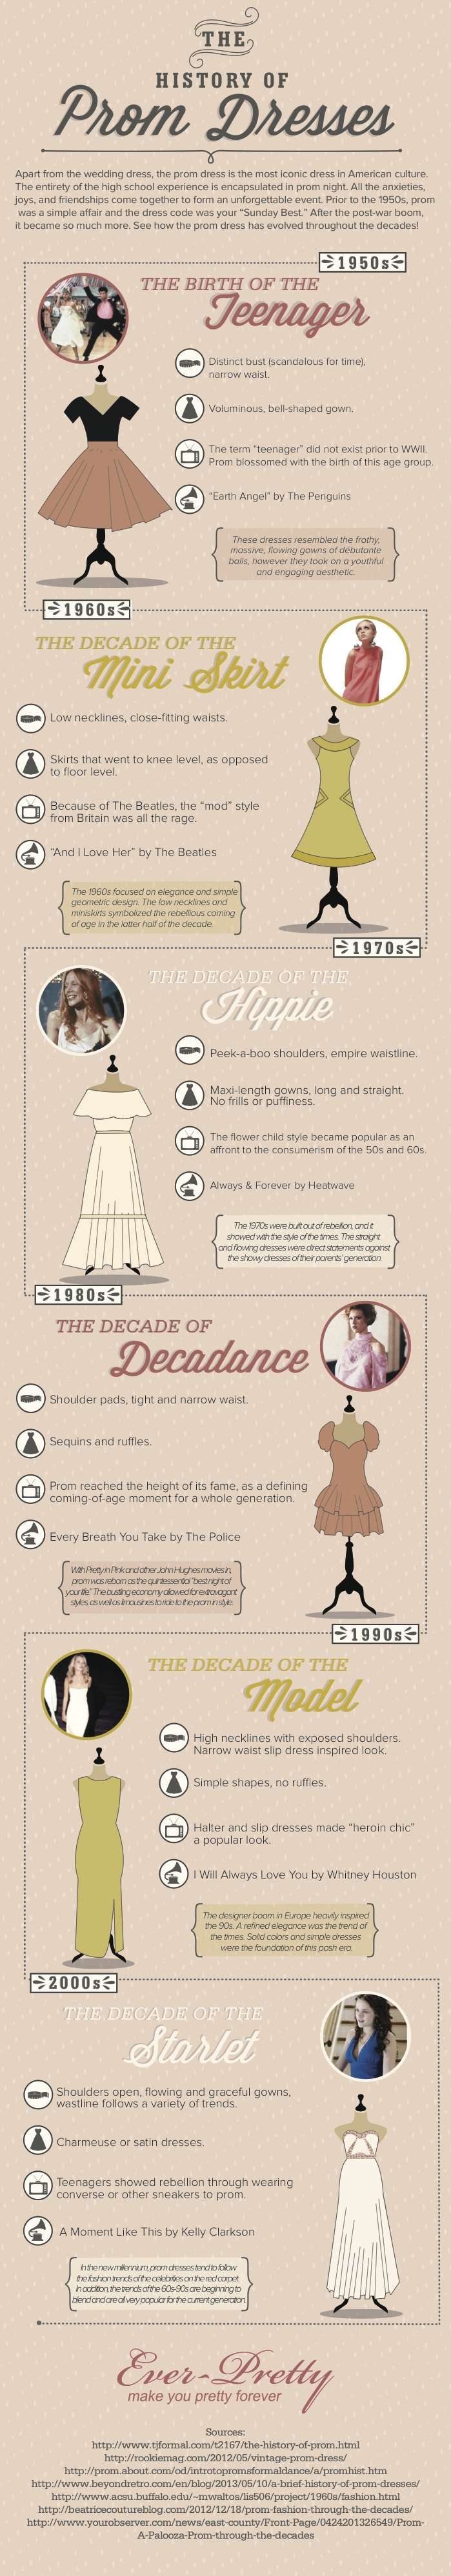 Learn how the prom dress evolved from the 20th to 21st century.